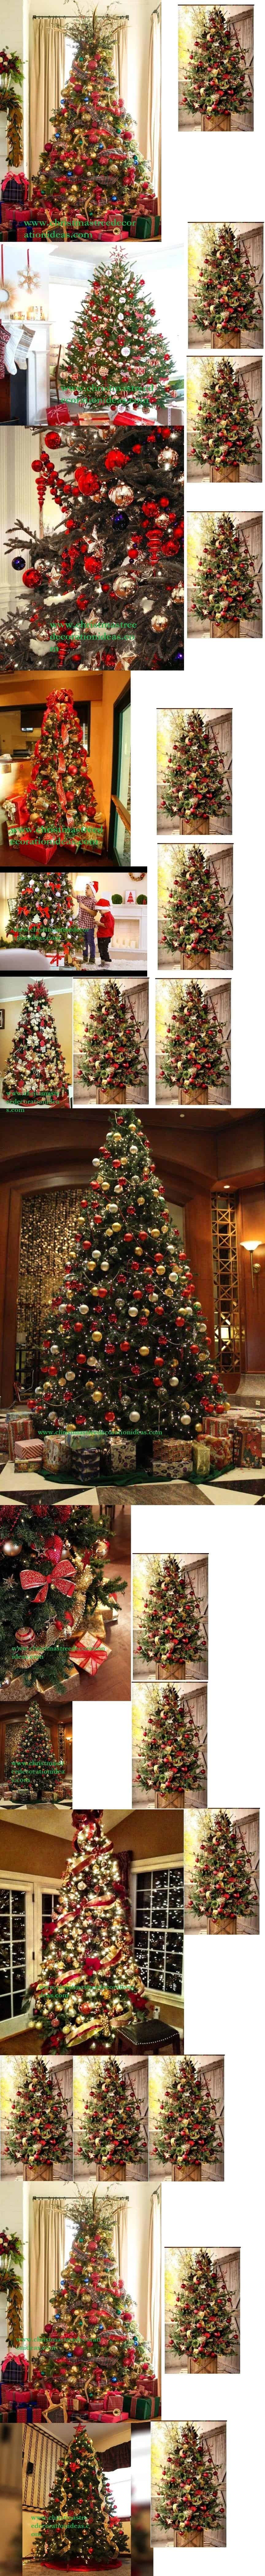 Red And Gold Christmas Tree Decorating Ideas